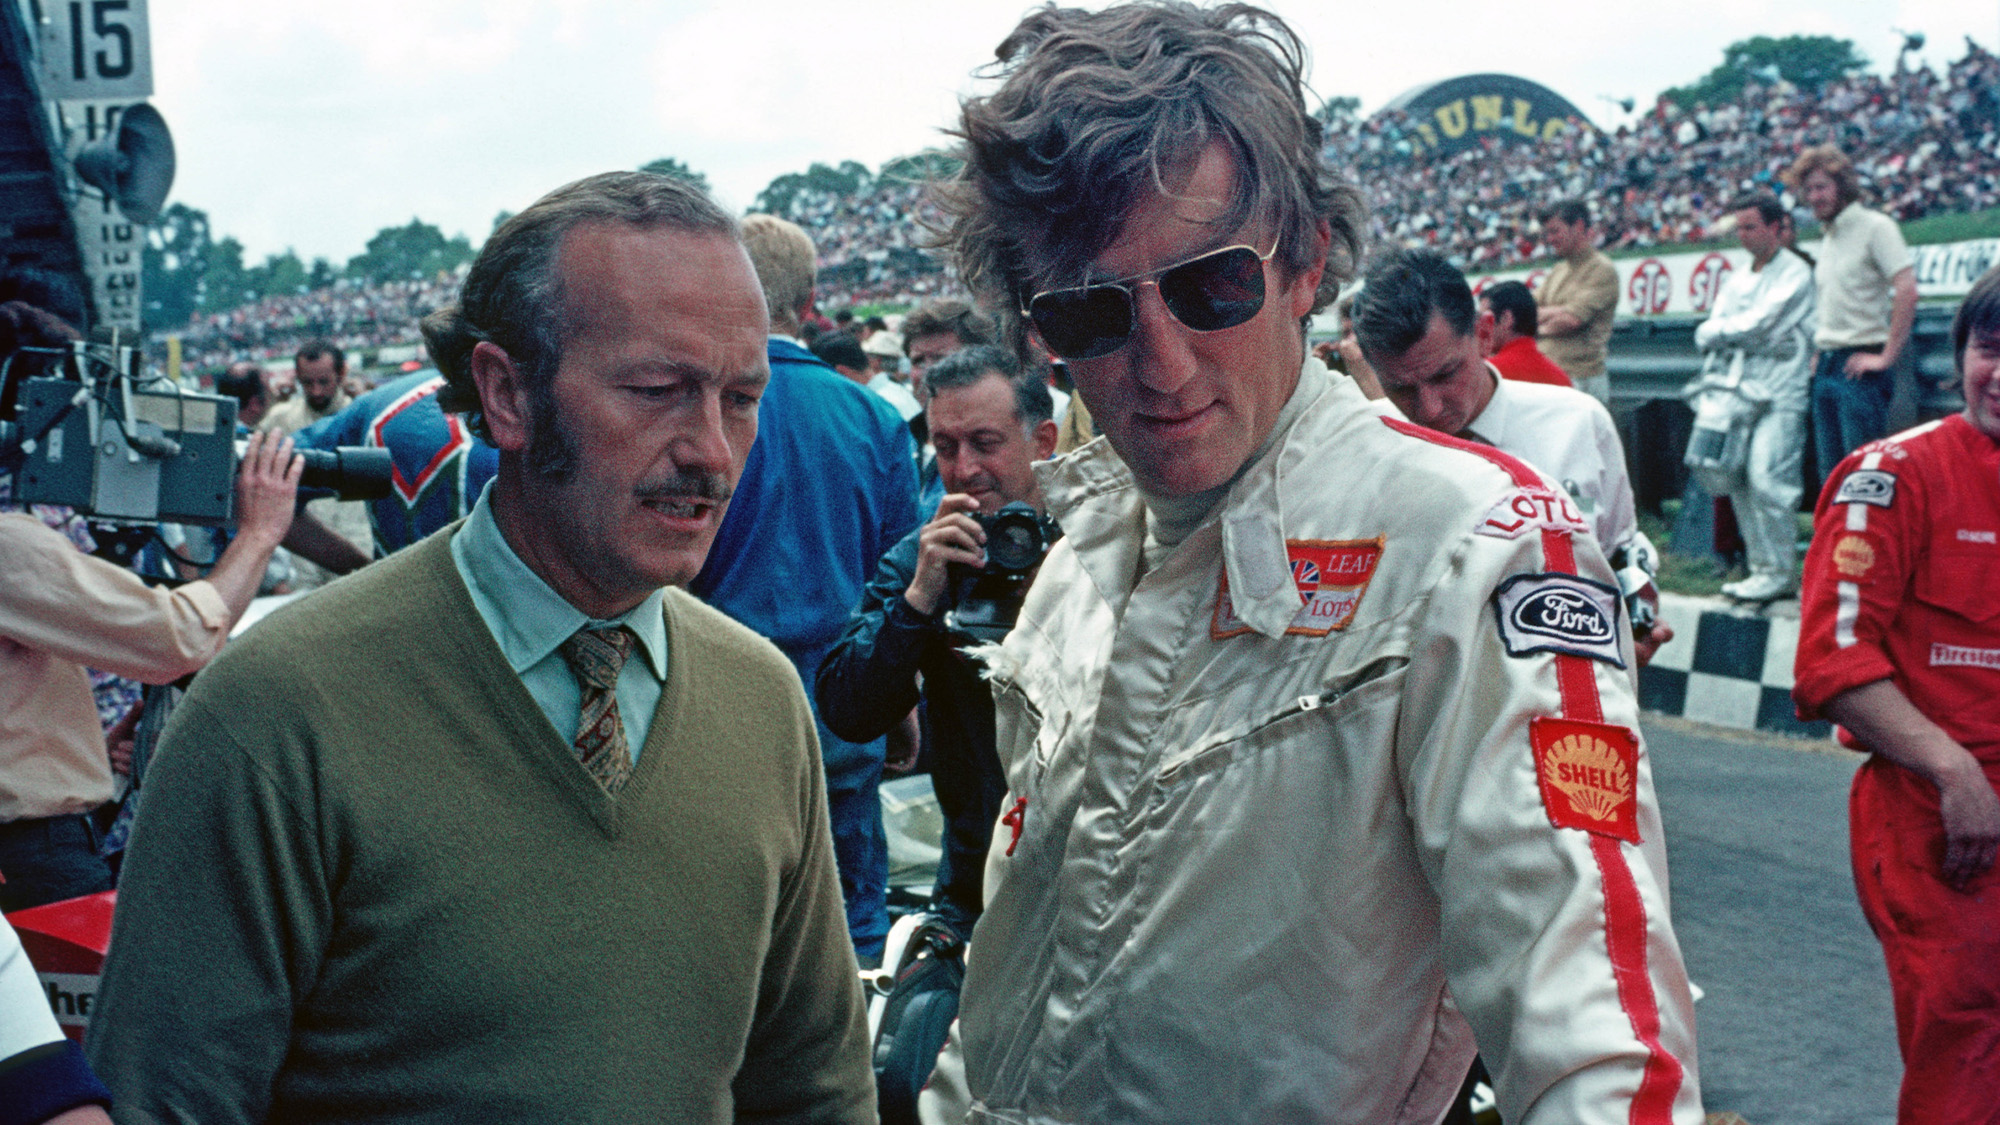 Colin Chapman with Jochen Rindt at Brands Hatch ahead of the 1970 British GP